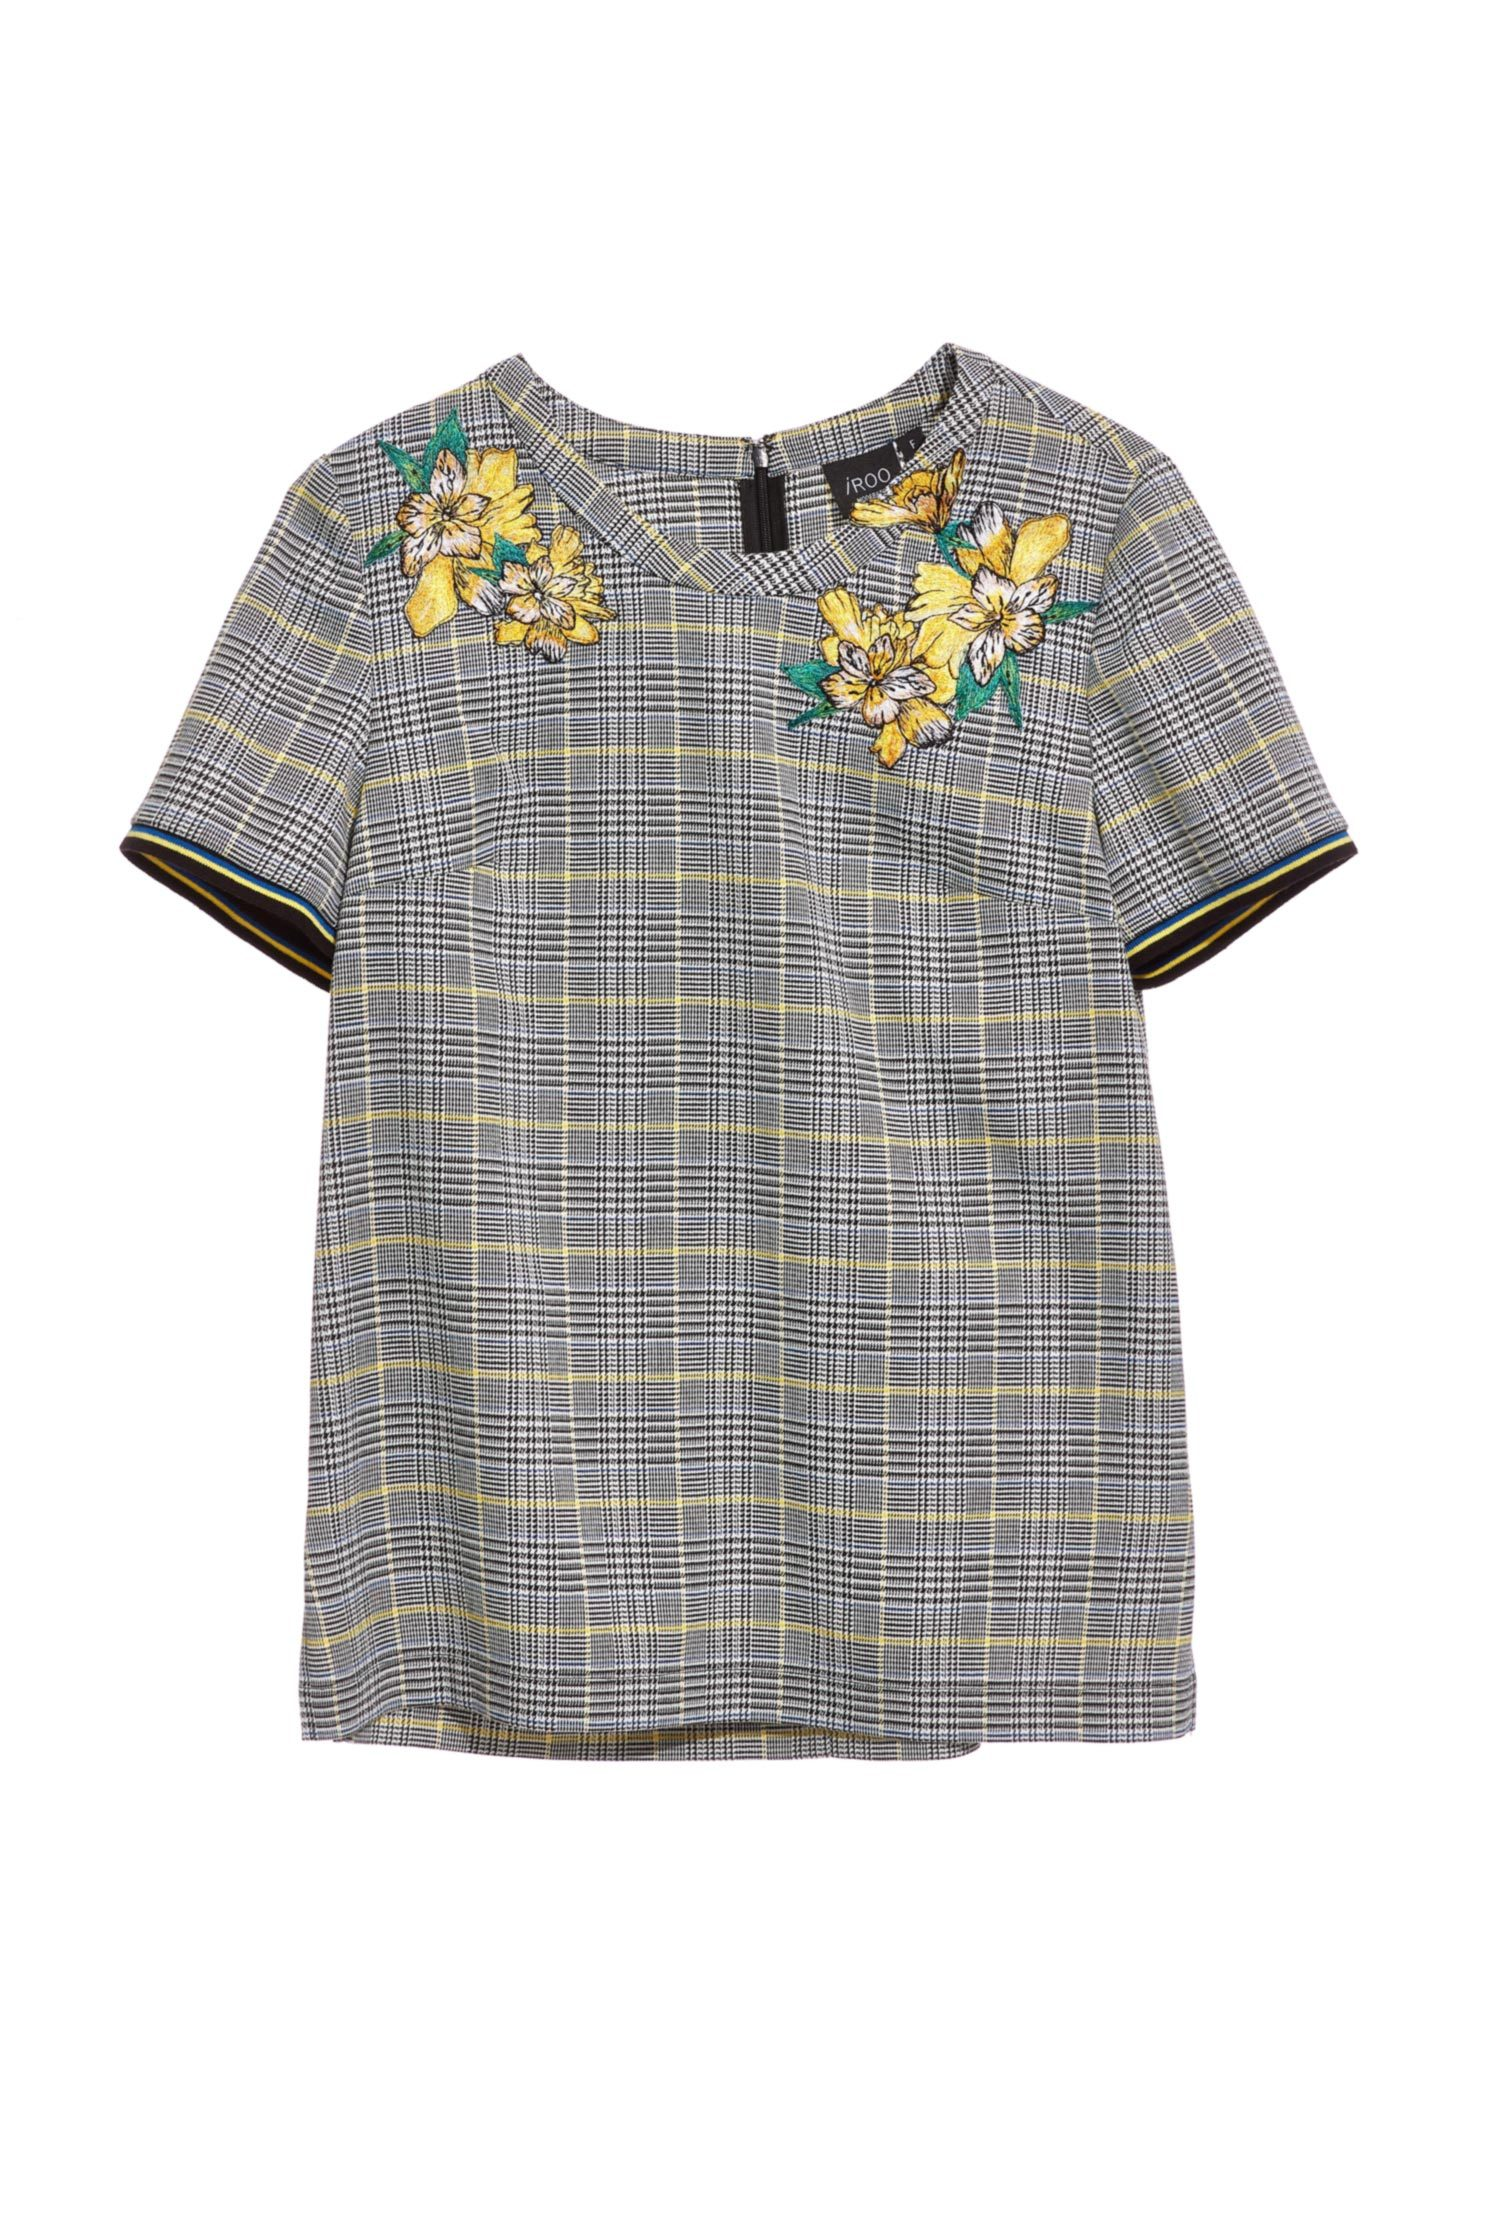 Classic England checkered Design embroidery Short Sleeve Top,top,embroidery,embroideredtop,shortsleevetop,embroidered,embroideredtop